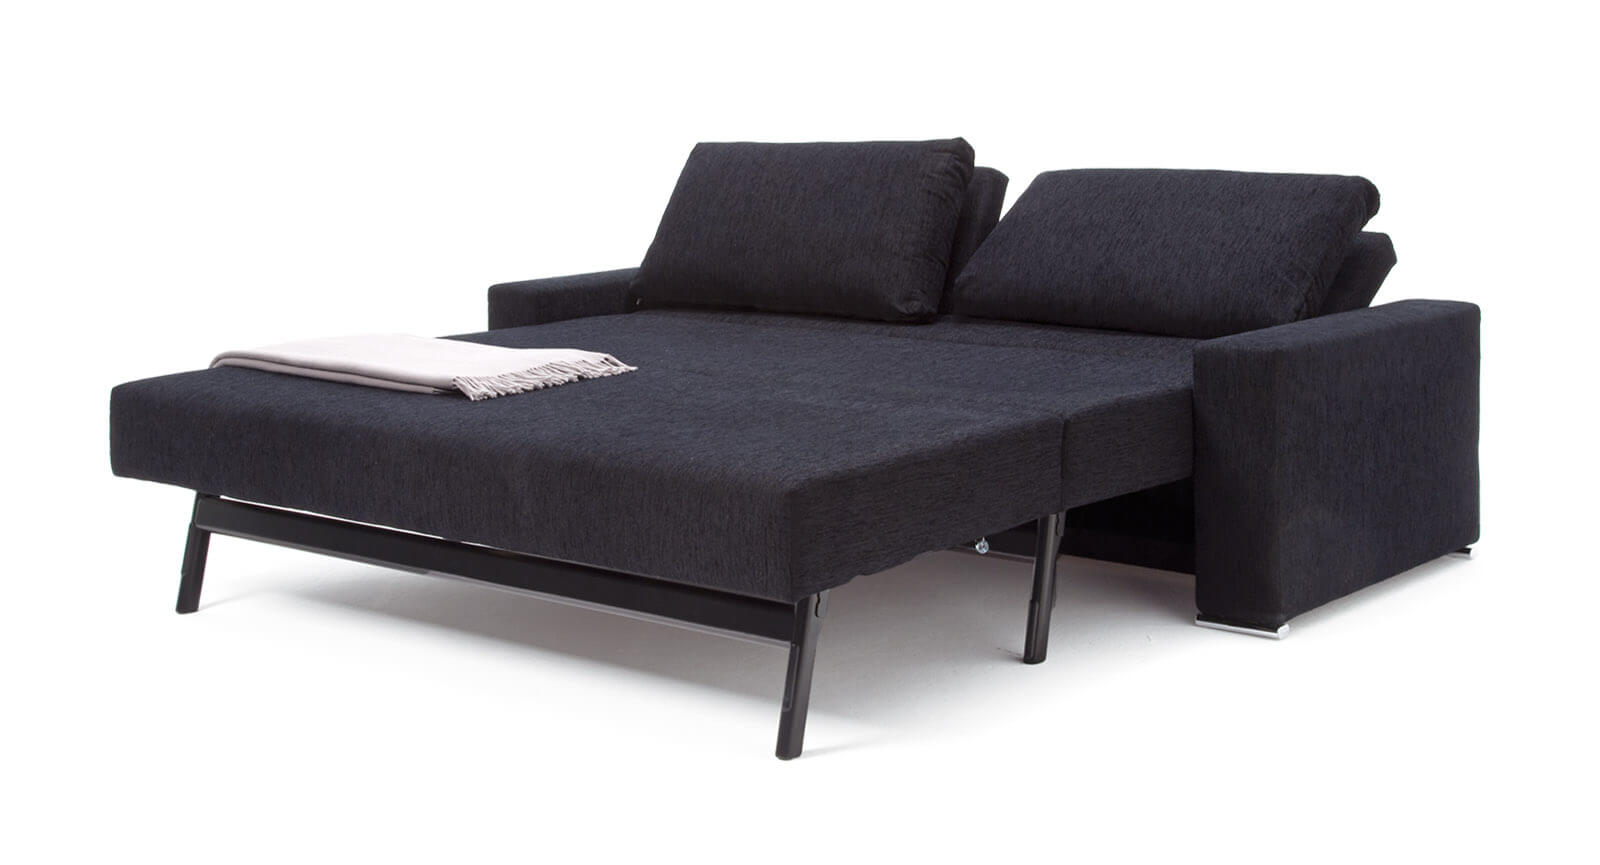 franz fertig sofa franz fertig sofa club sofa franz. Black Bedroom Furniture Sets. Home Design Ideas